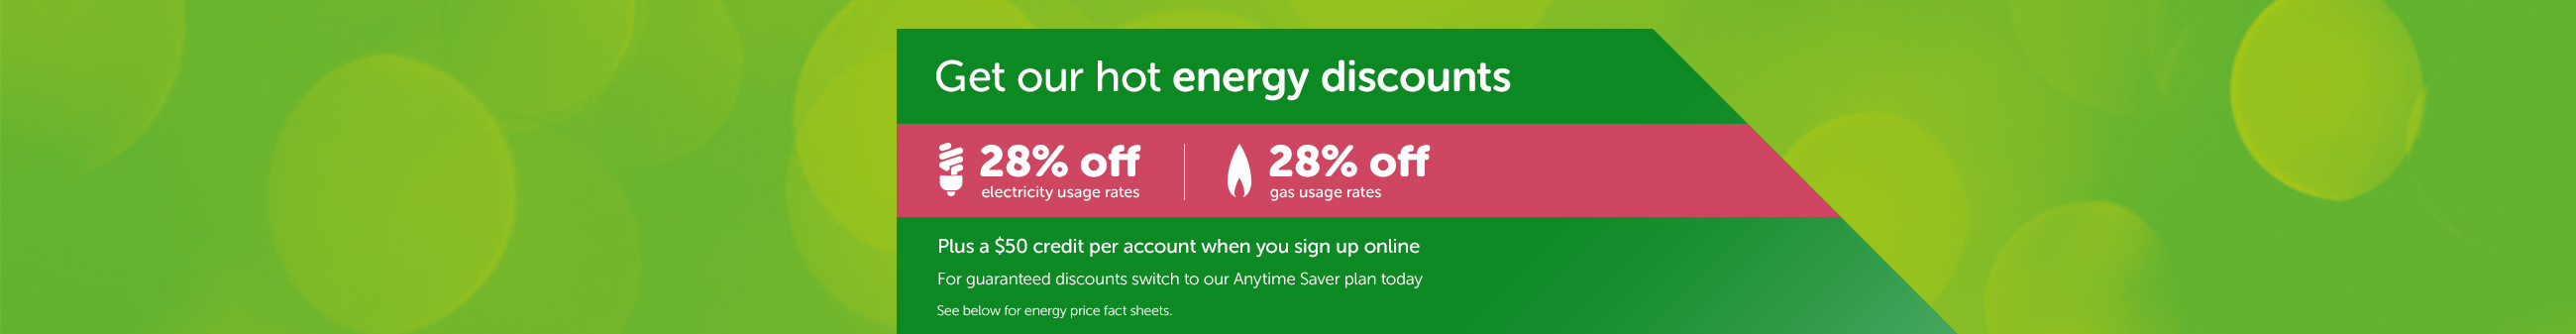 Get our hot energy discounts